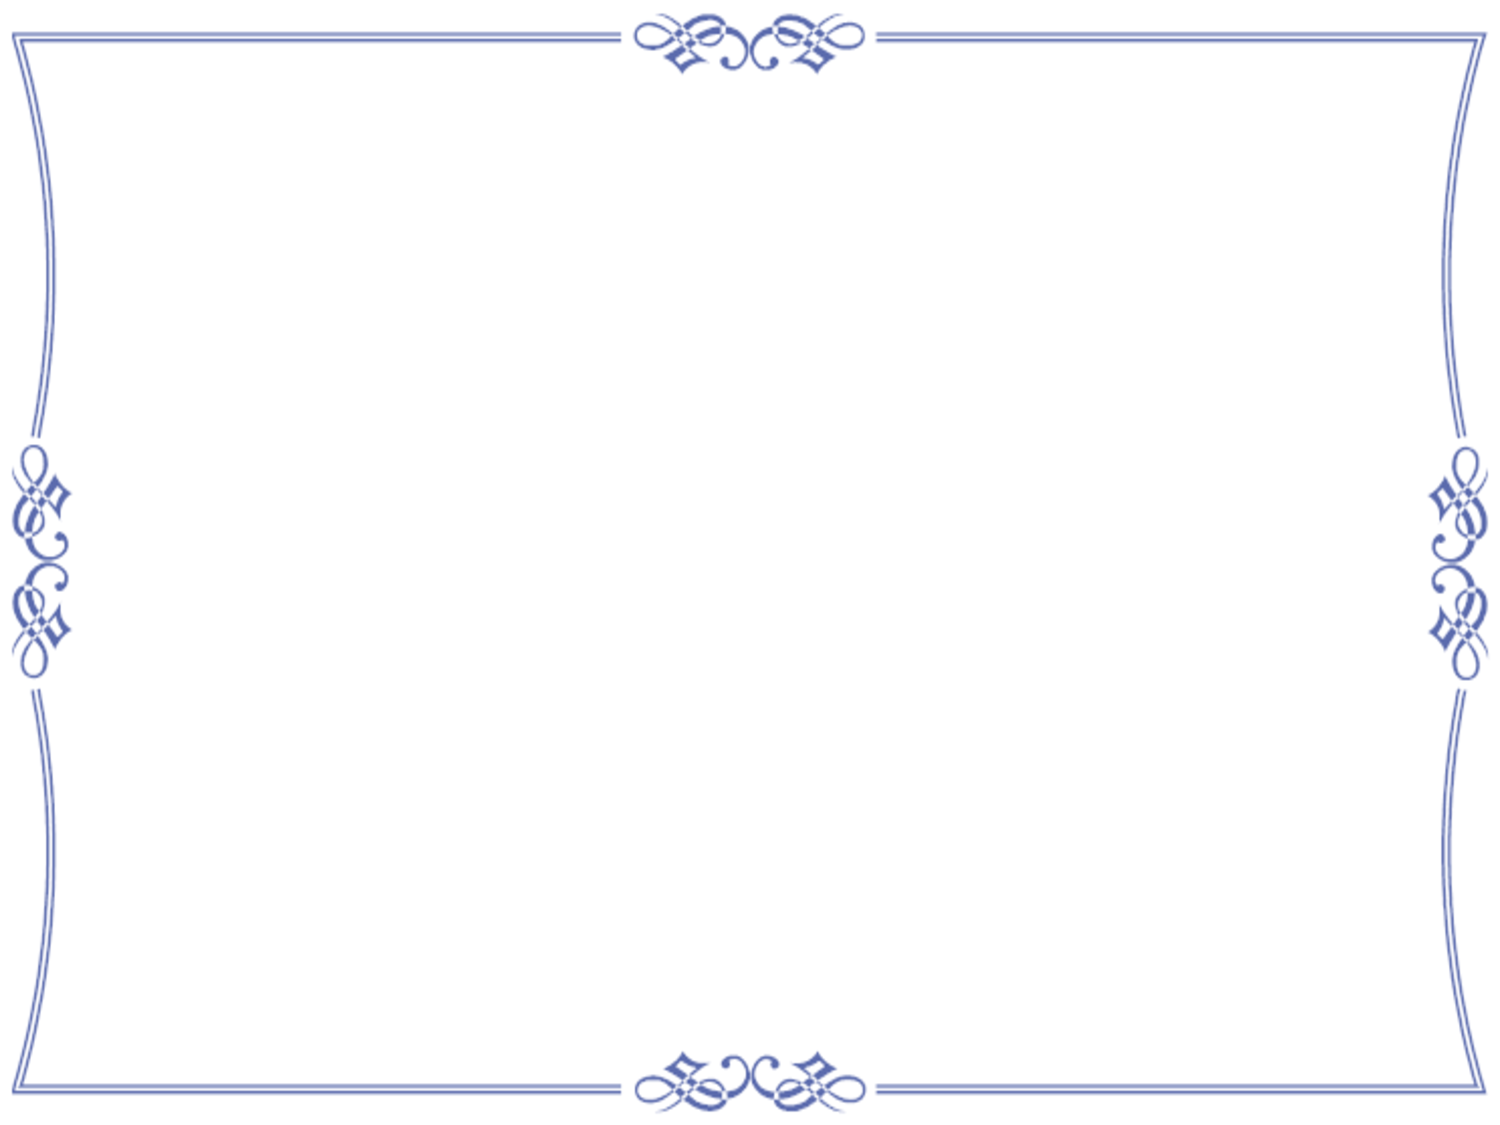 Elegant Blue Certificate Border By Bamafun Design Prints